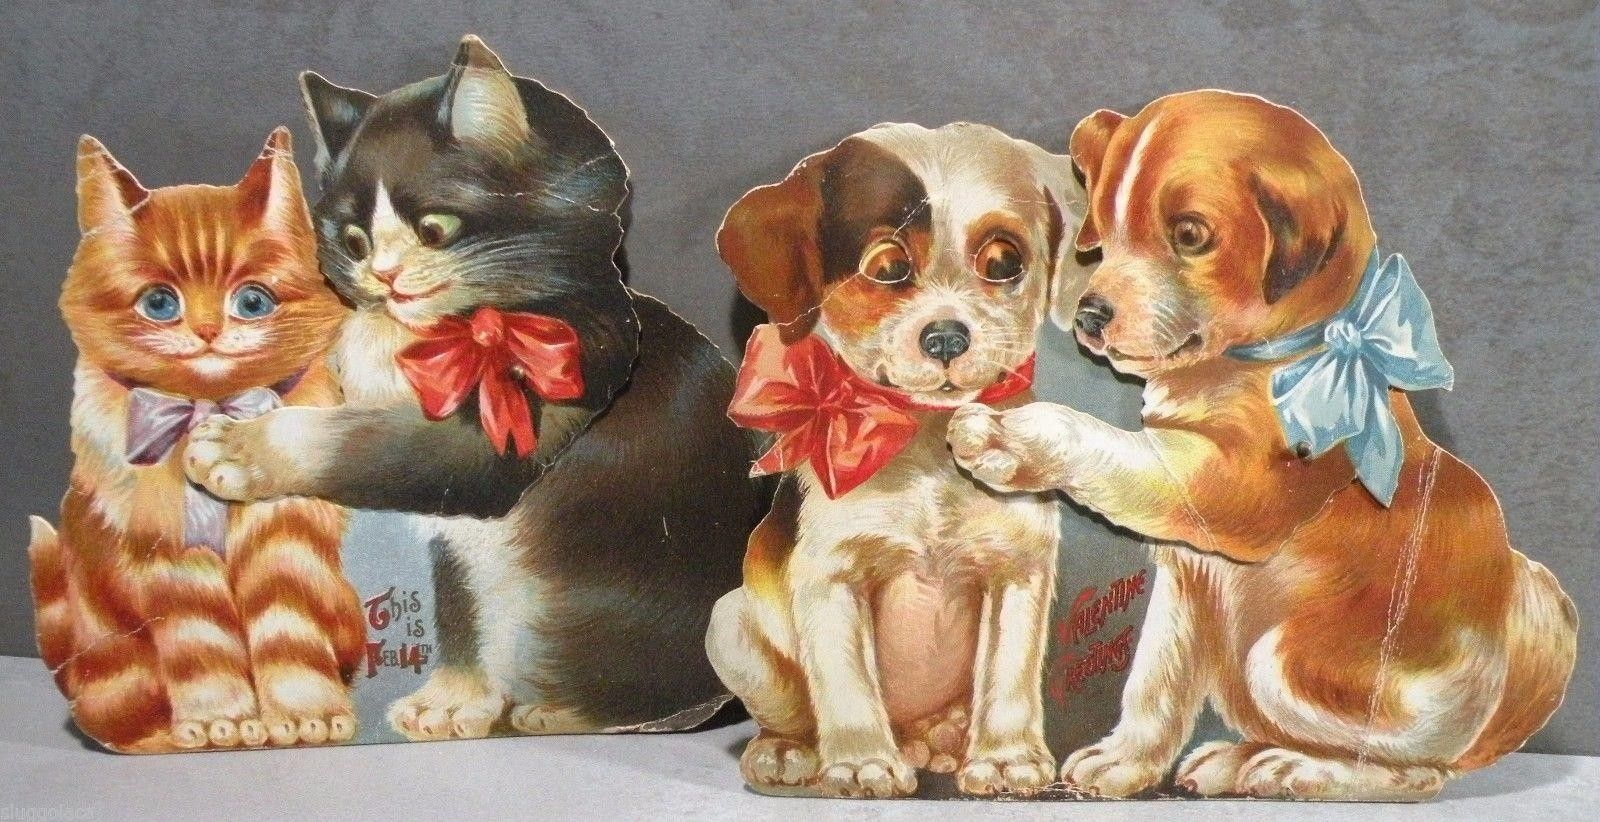 Pair Of Antique Articulated Puppies Kittens Valentine Greeting Cards C 1915 1798675433 Valentine Greeting Cards Vintage Postcards Puppies